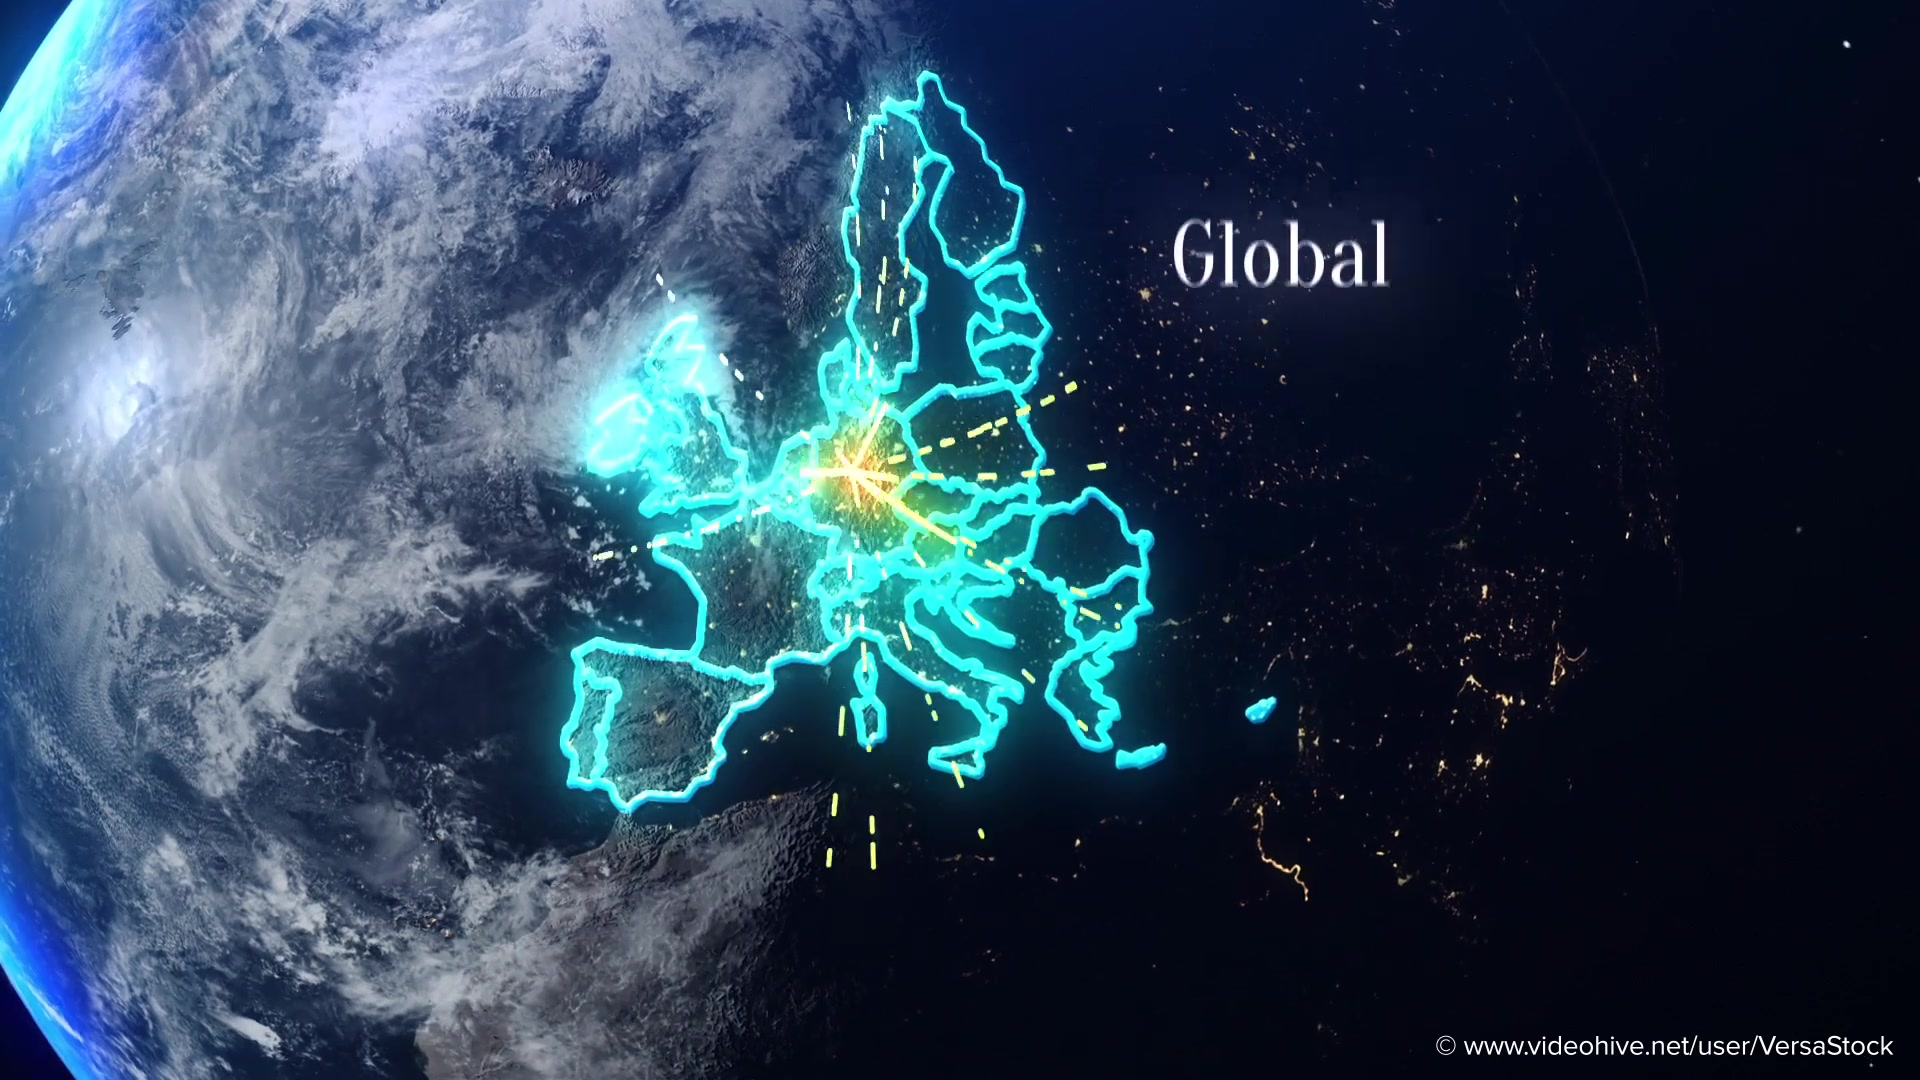 Global Economics From Space Infographics Videohive 25031384 After Effects Image 10